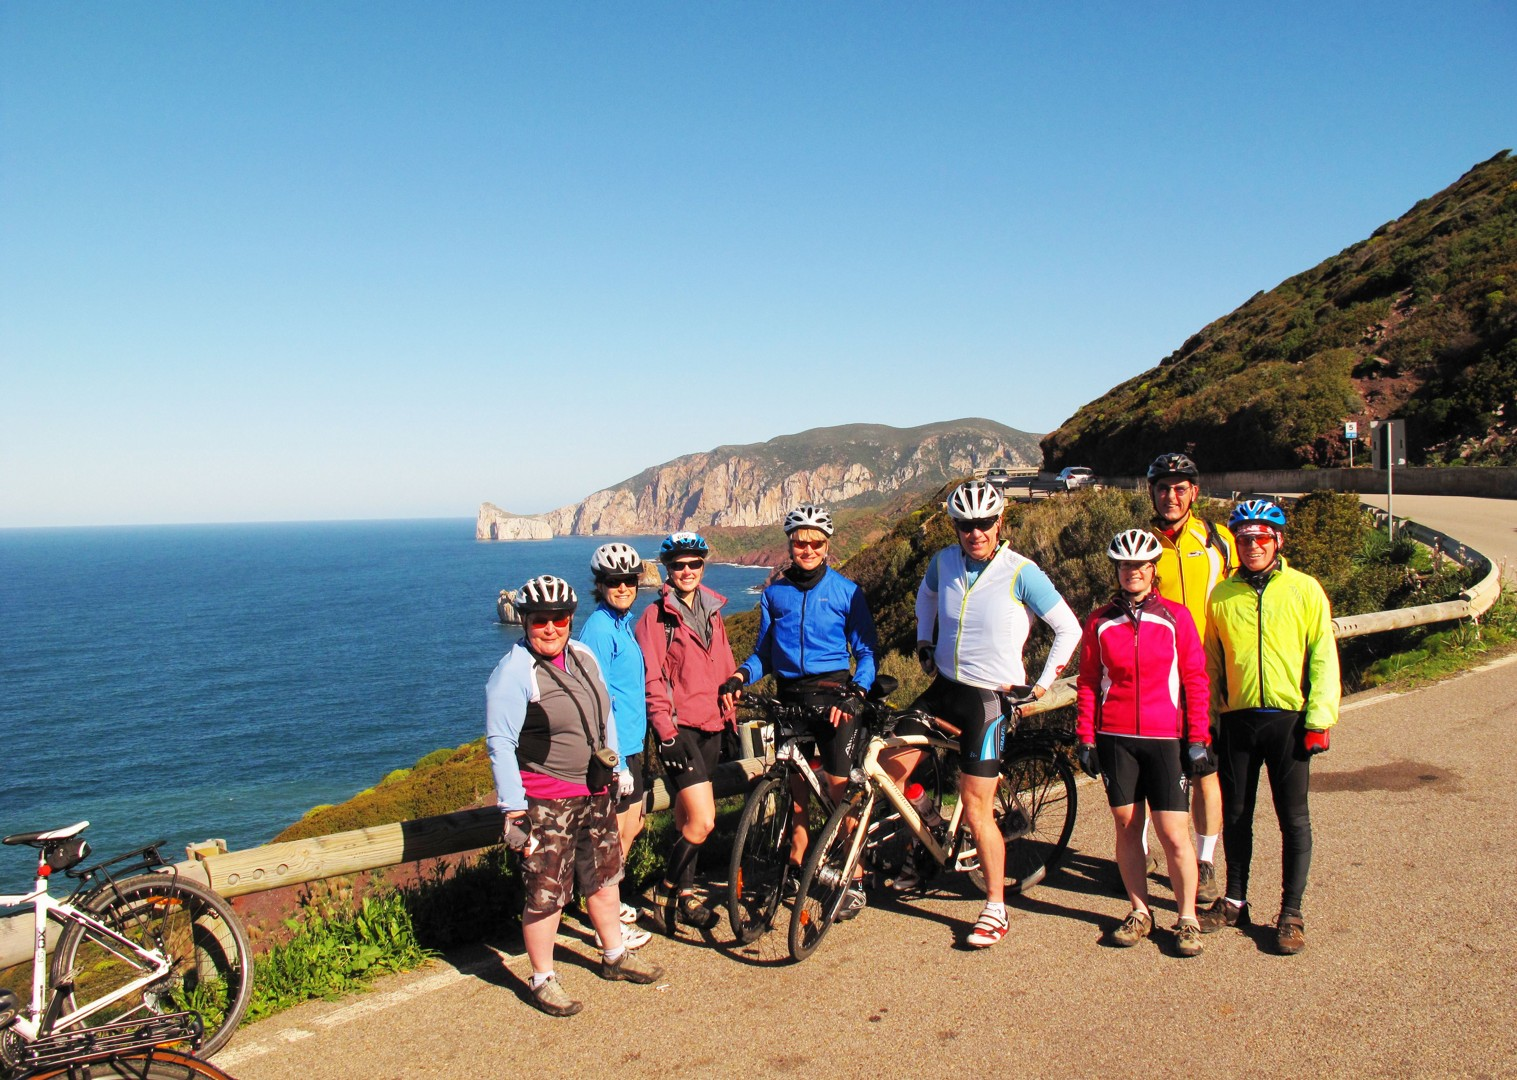 group-guided-cycling-holiday-italy-sardinia.jpg - Italy - Sardinia - Island Flavours - Guided Leisure Cycling Holiday - Italia Leisure and Family Cycling